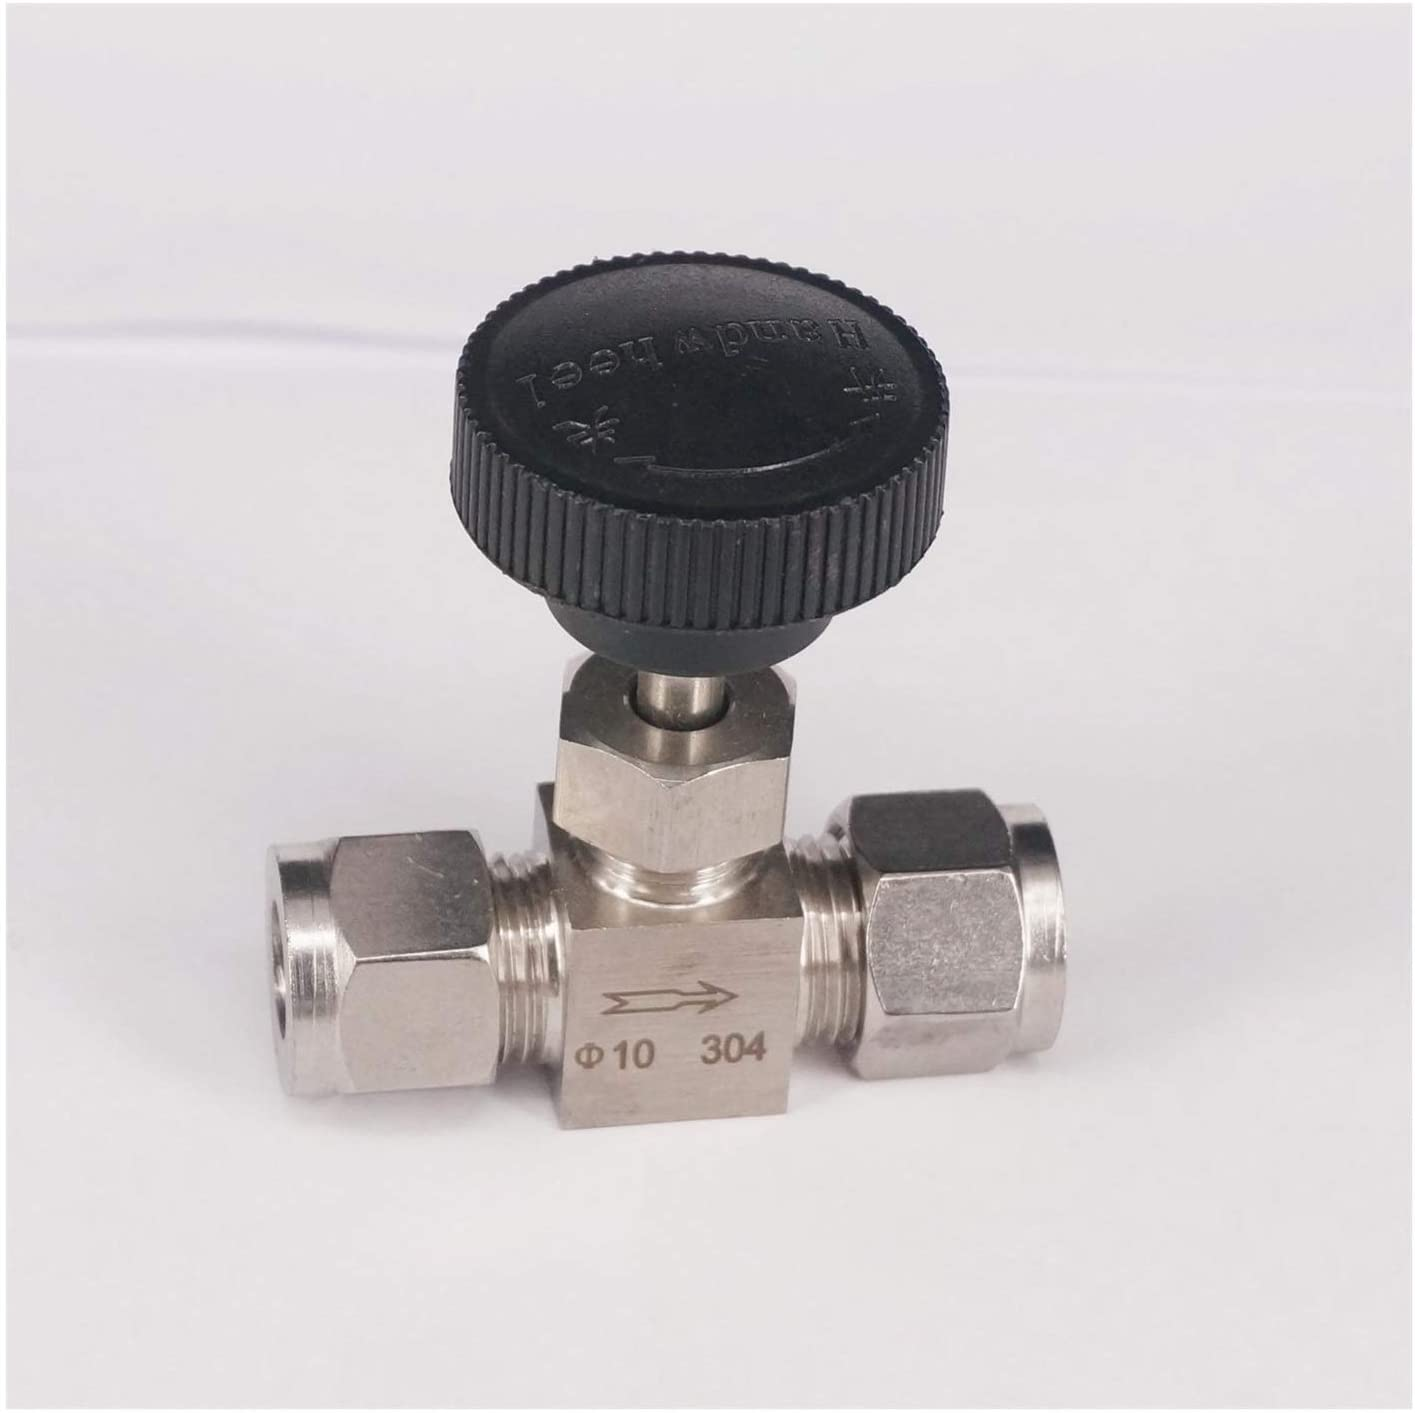 BAIJIAXIUSHANG-TIES Valves, Fittings Needle Valve Fit 10mm OD Tube 304 Stainless Steel Shut Off Flow Control Needle Valve Compression Fitting 6.4 Mpa